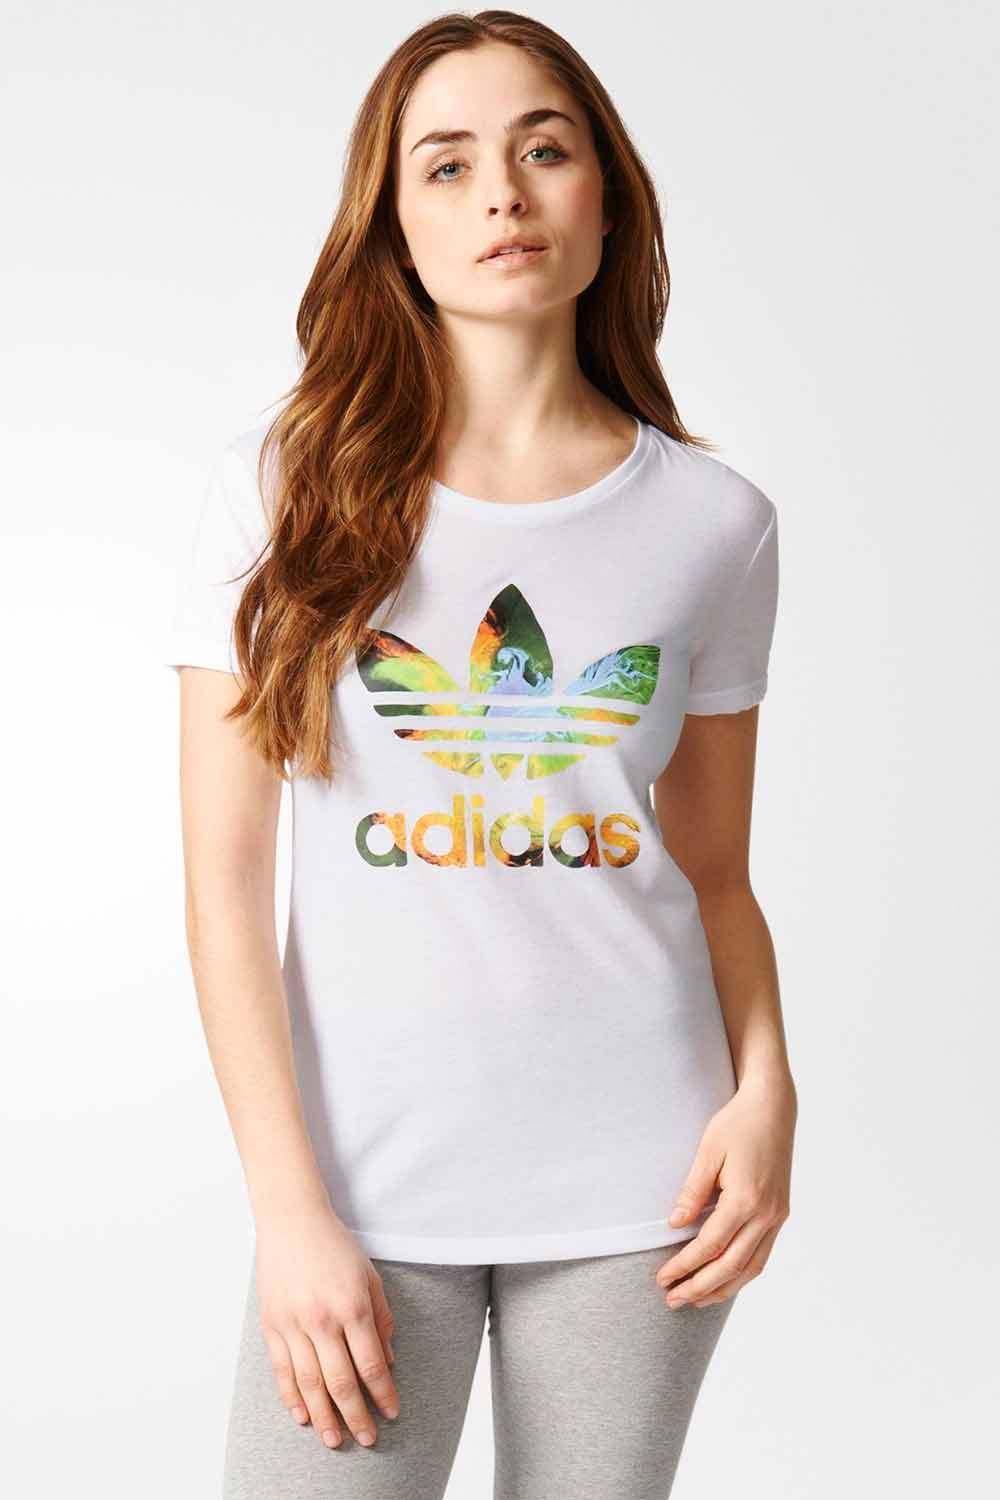 T-Shirt Adidas Originals Graphic Trefoil - BabadoTop 94bb4584631f9